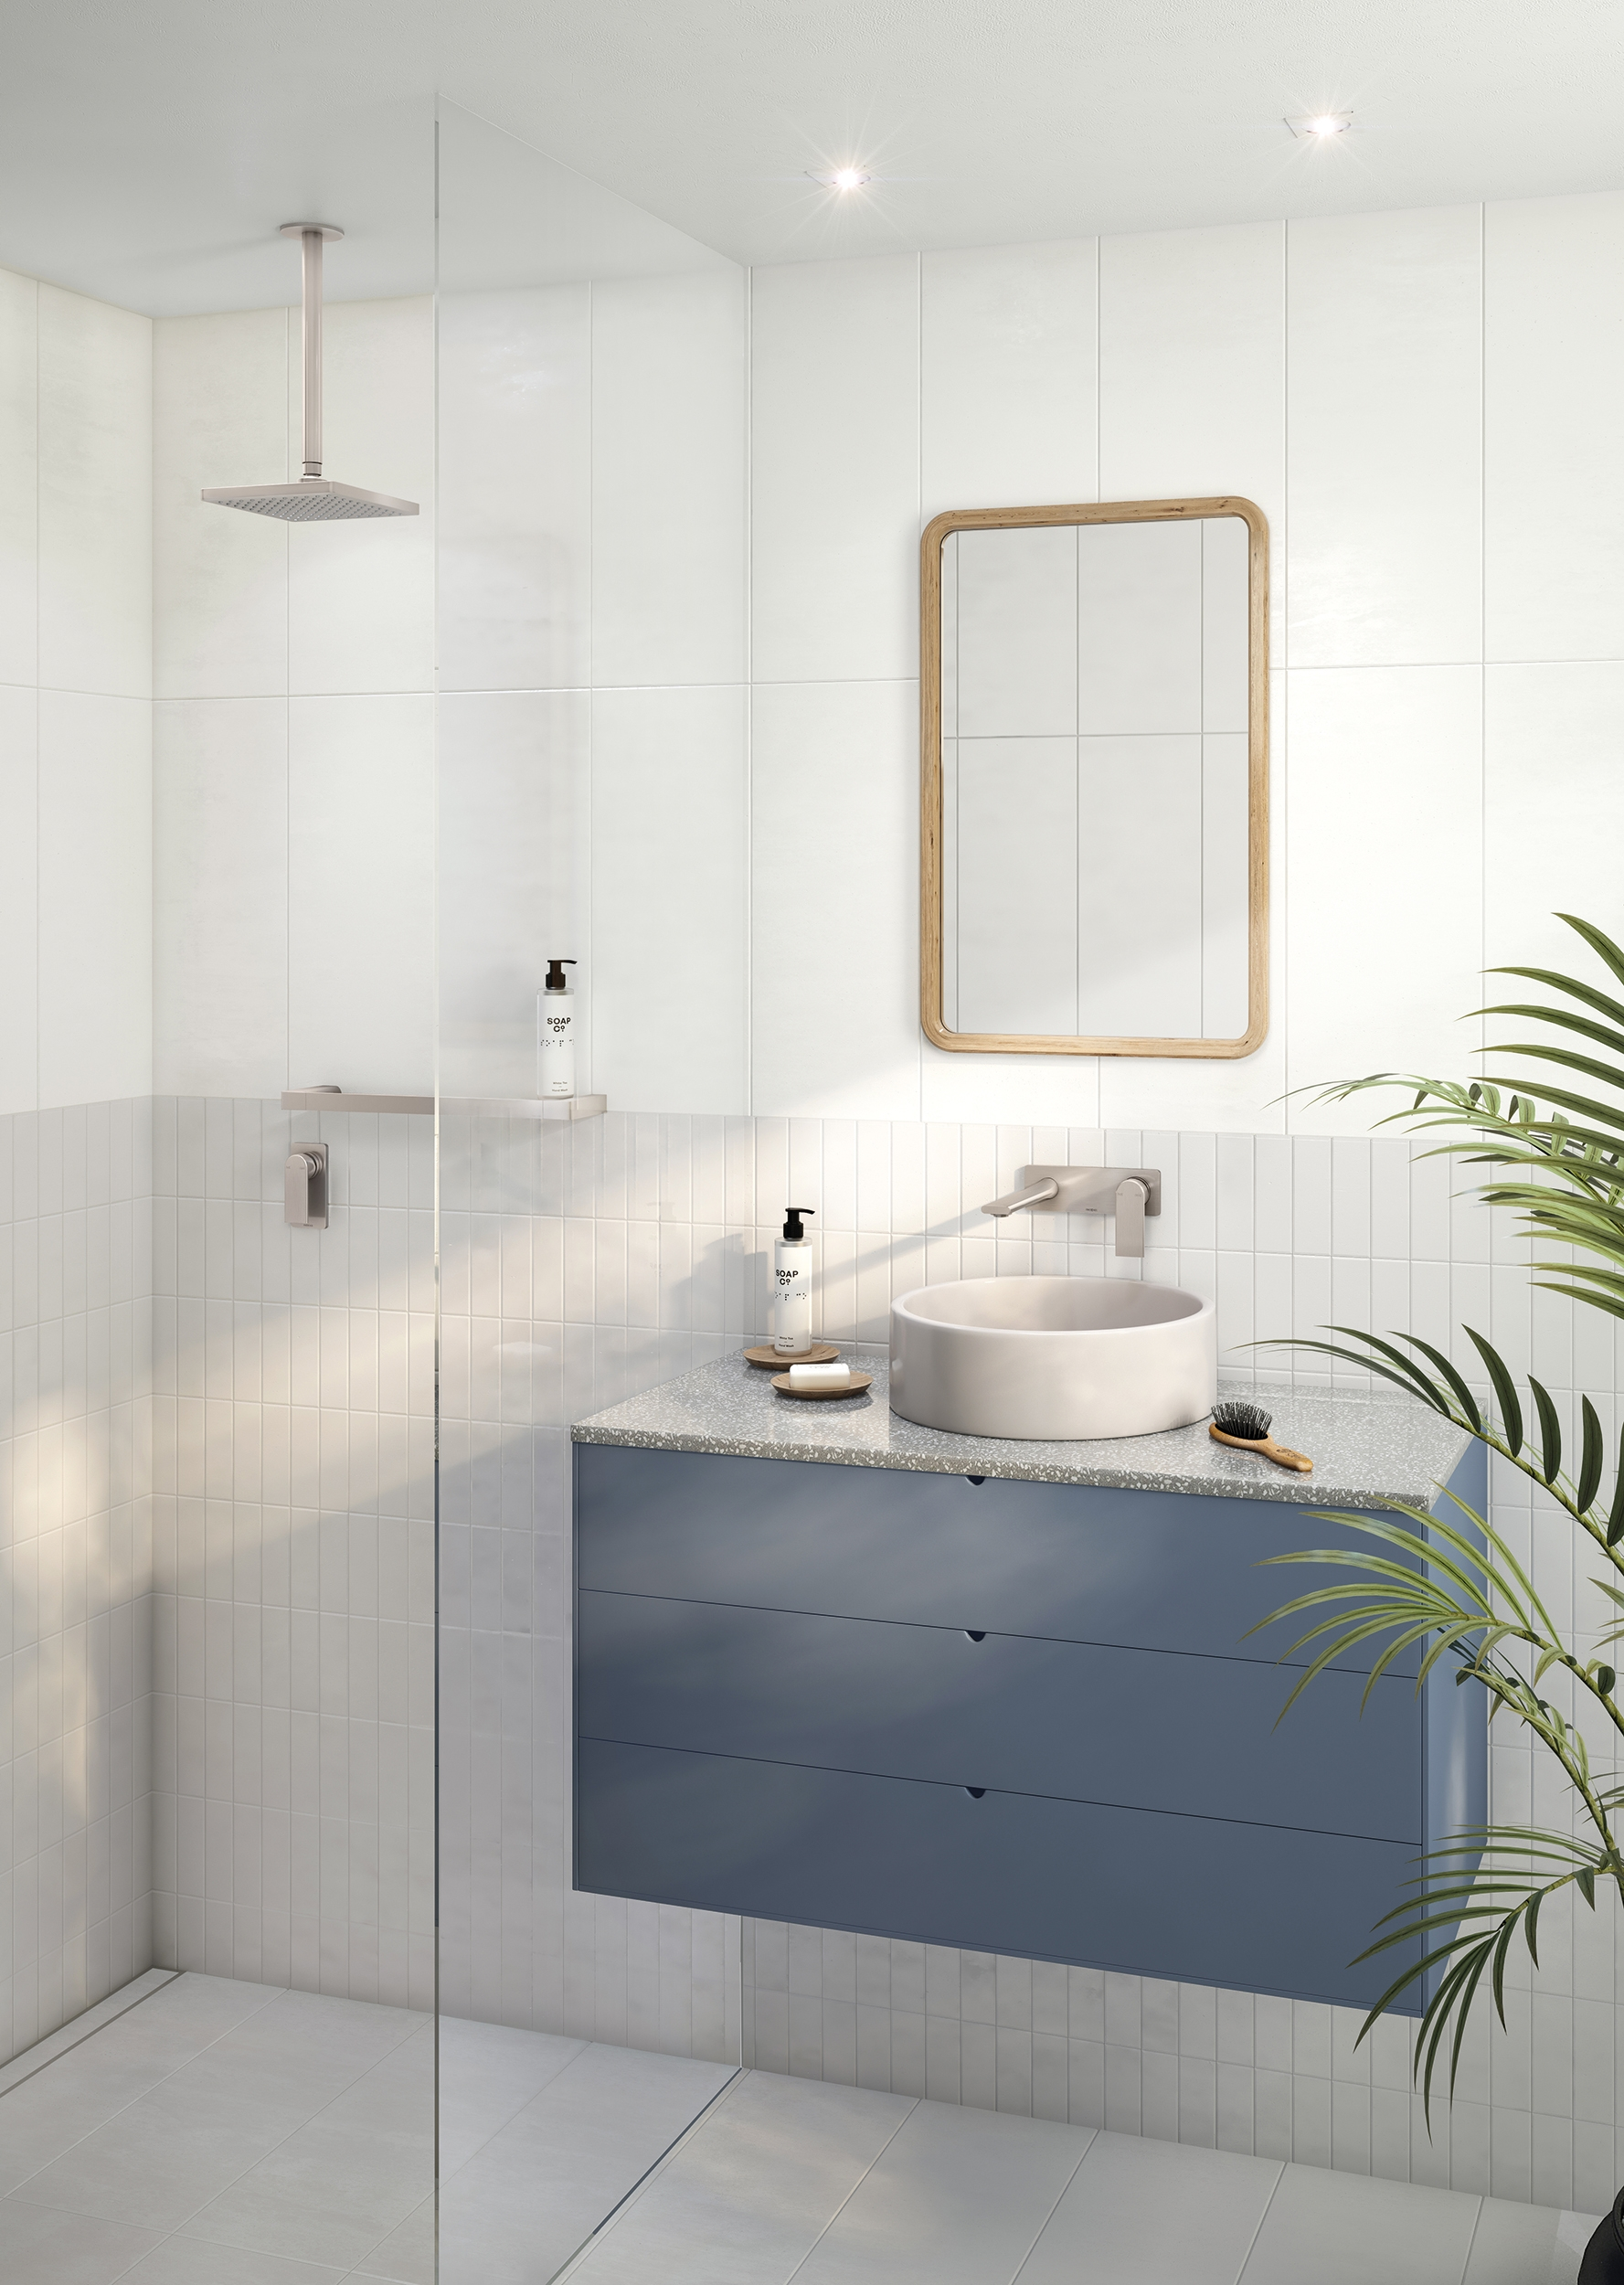 Vanities and Basins for small bathrooms and compact spaces